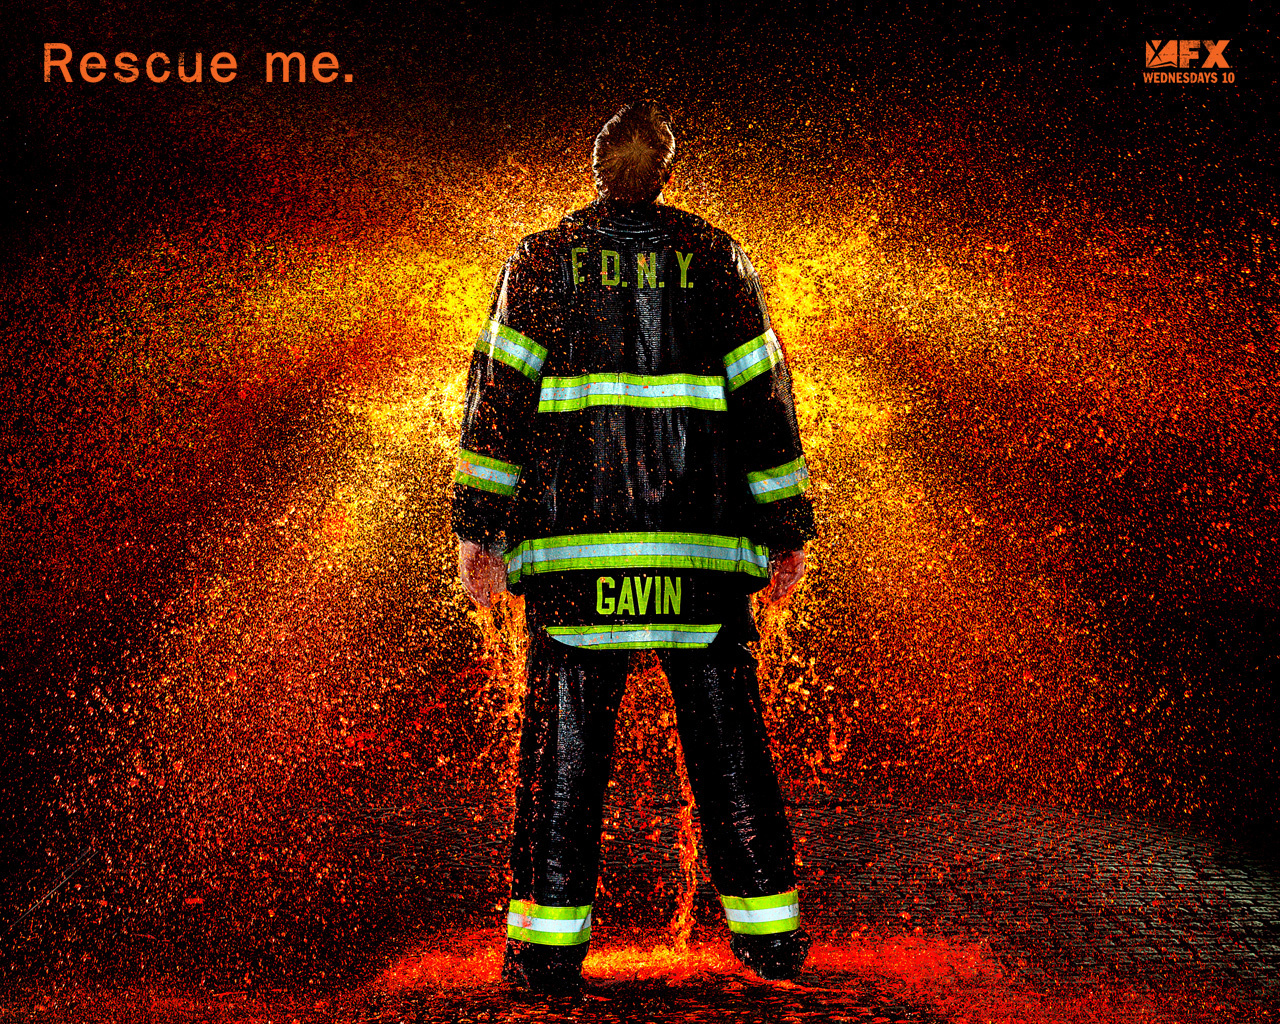 rescue me images rescue me hd wallpaper and background